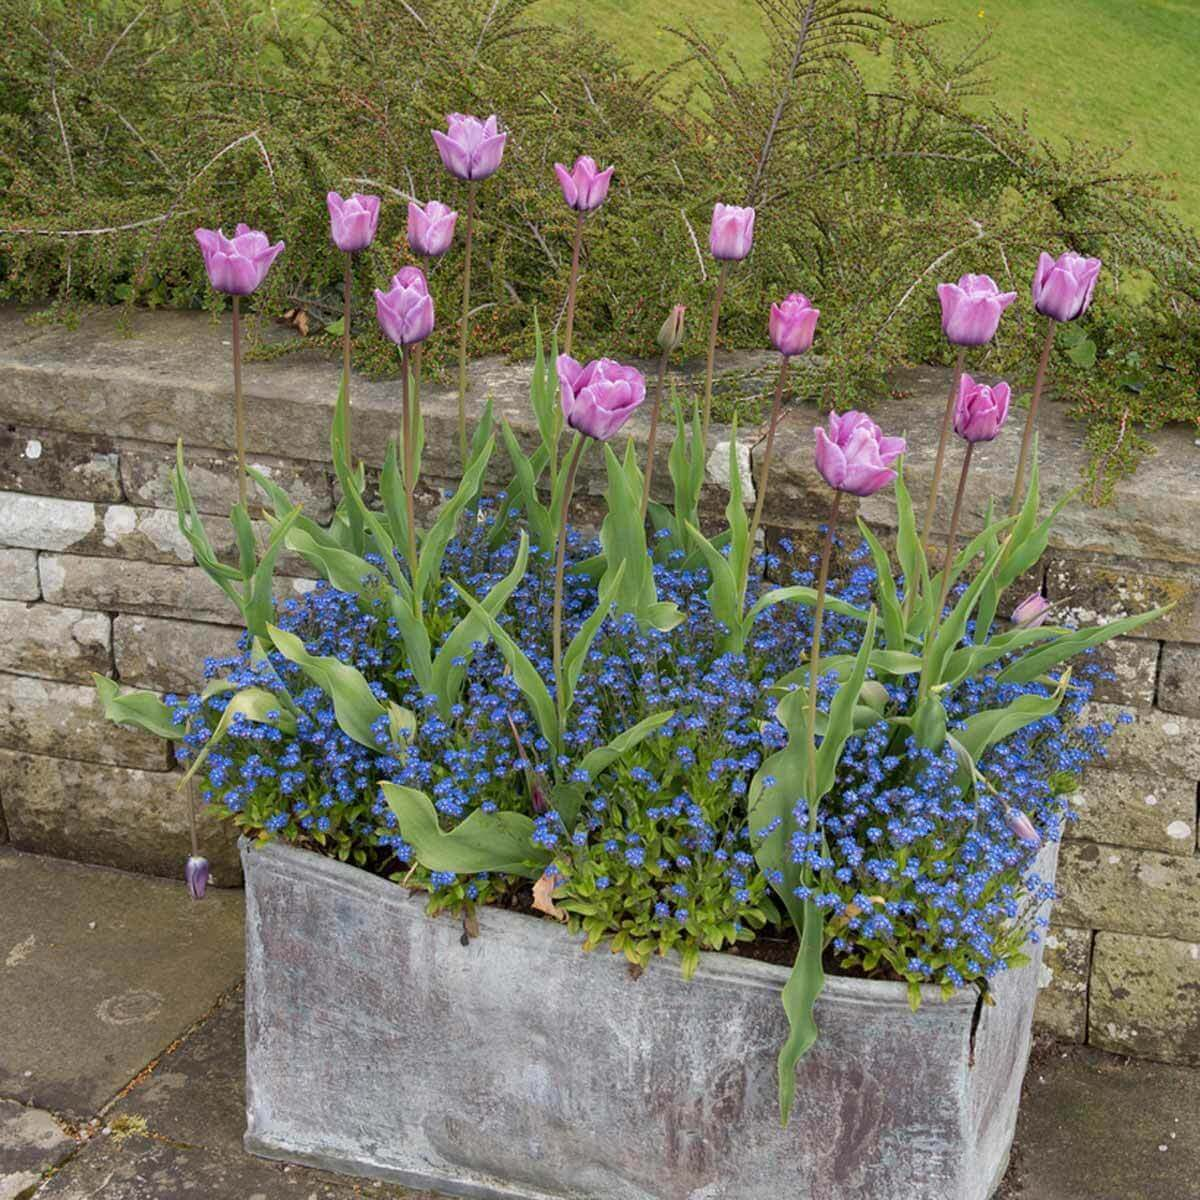 pink tulips and blue forget-me-nots